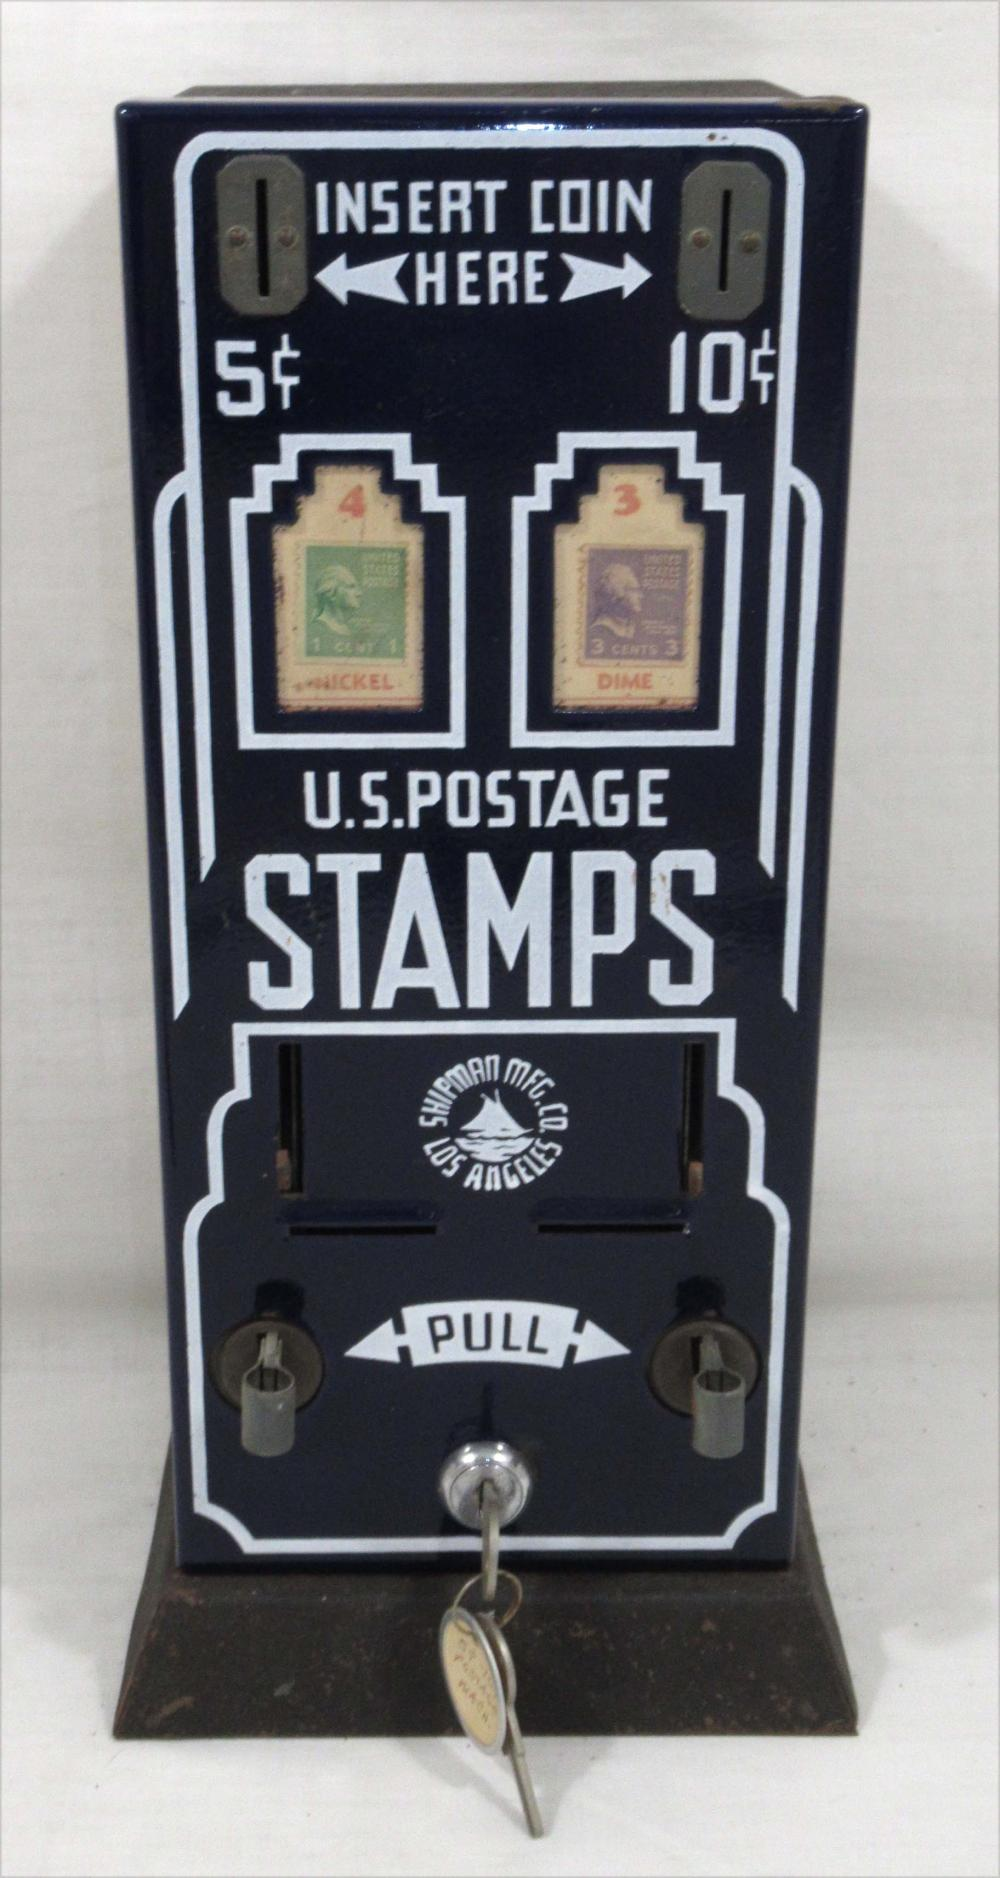 Postage Stamp Machine w/ Key